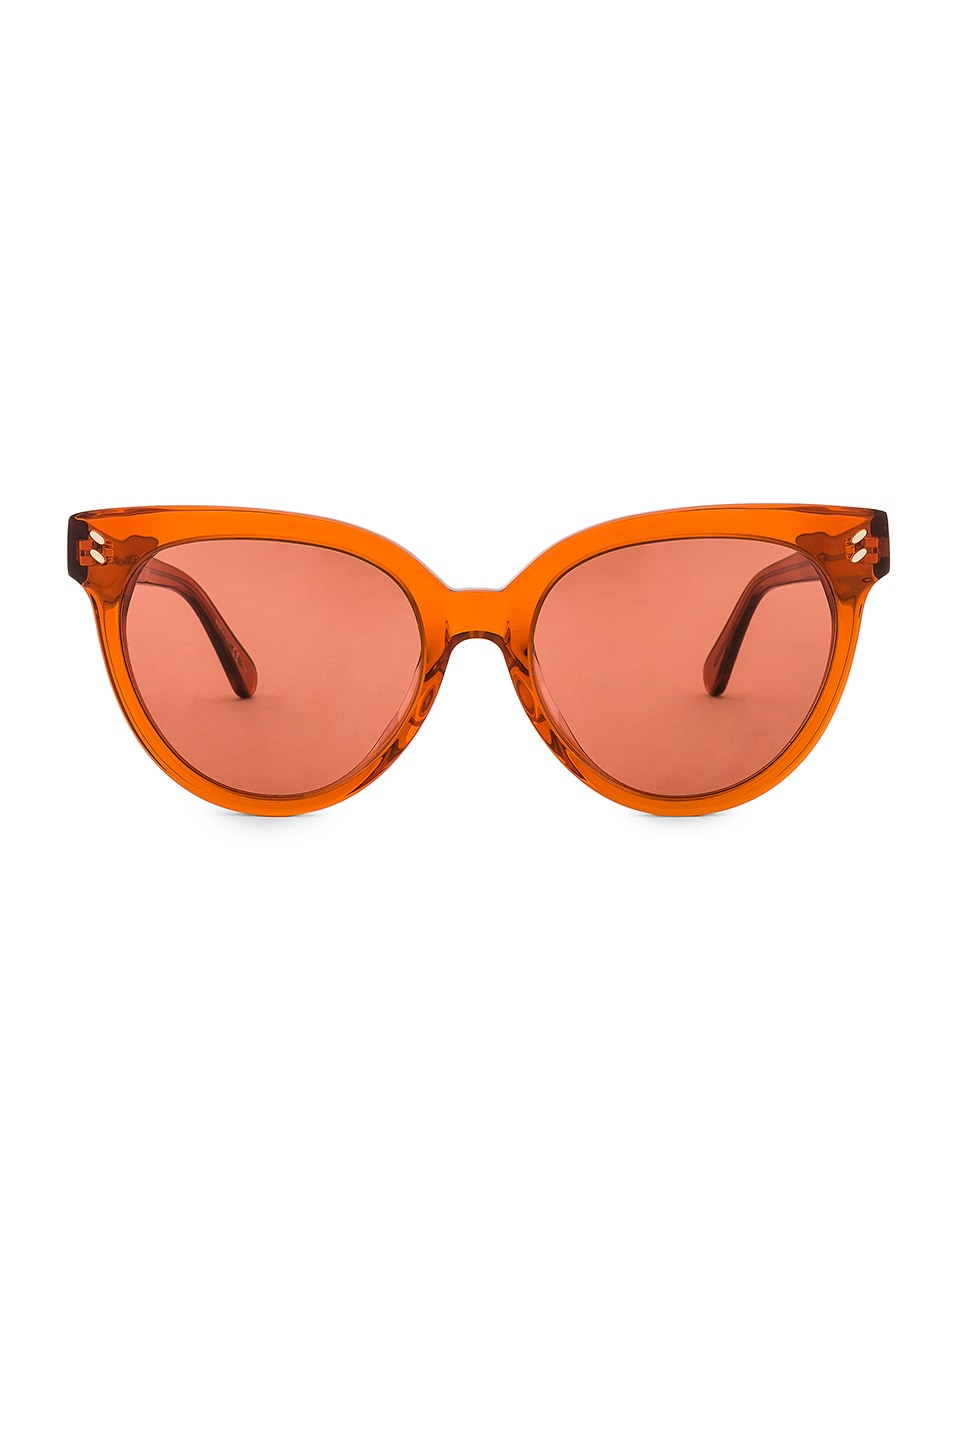 Stella McCartney Round Cat Eye Acetate in Shiny Transparent Dark Orange & Orange